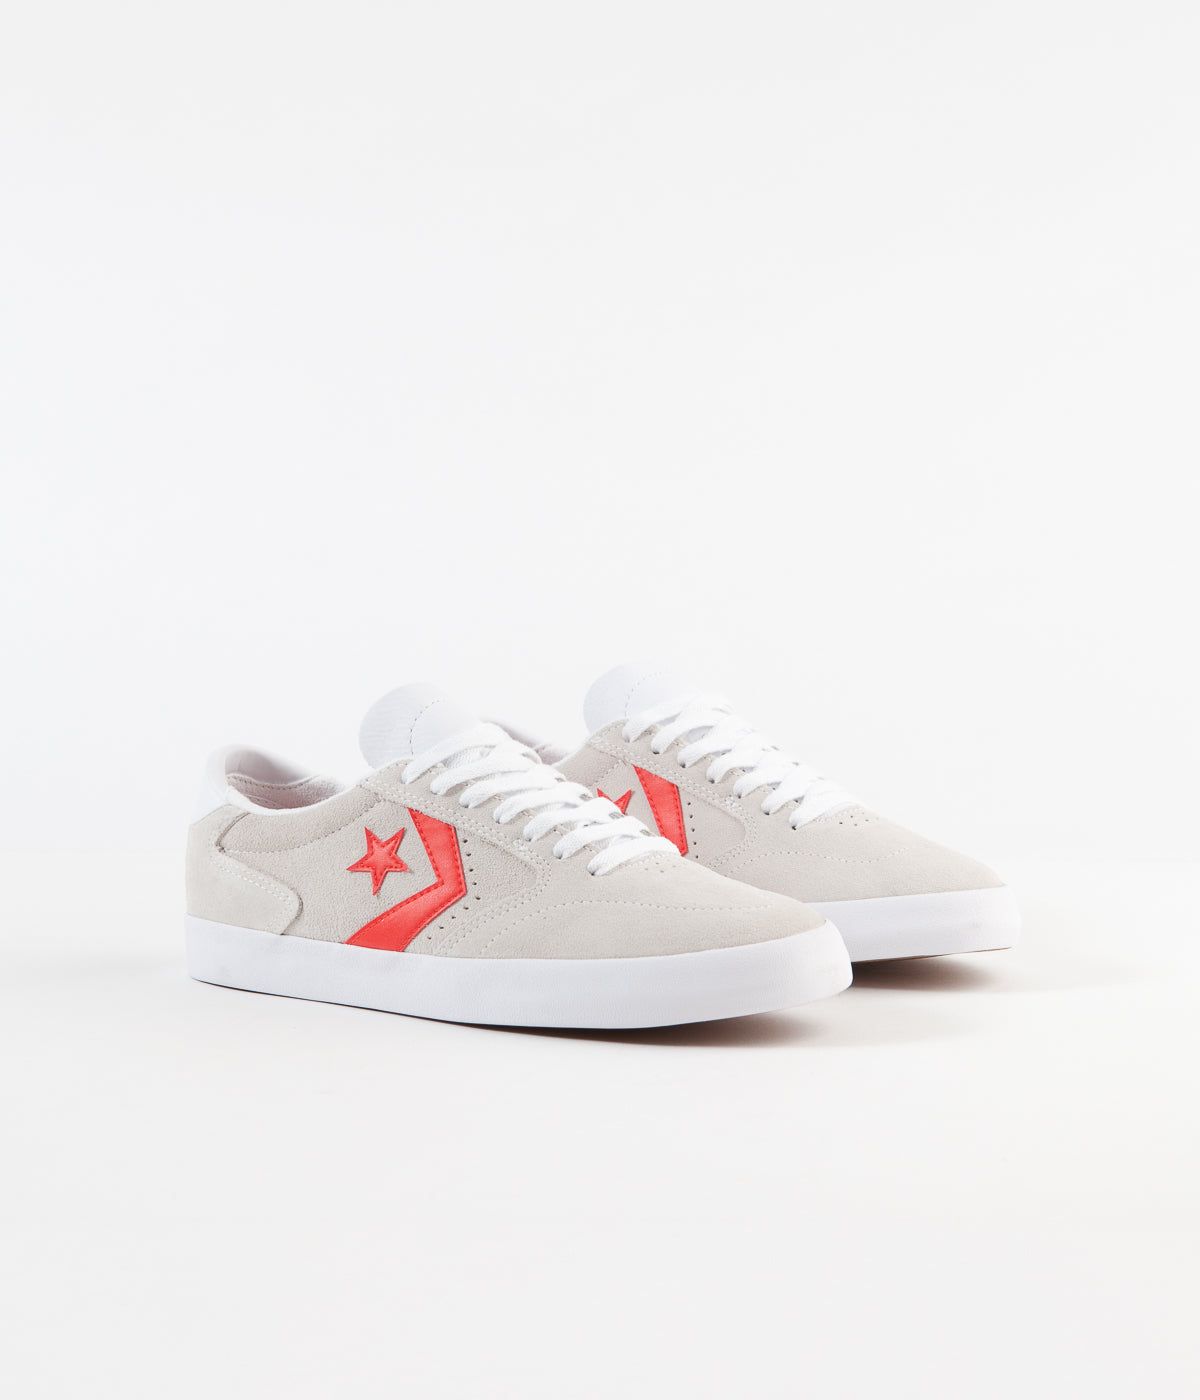 Converse Checkpoint Pro Ox Classic Suede Shoes - White / Habanero Red / White